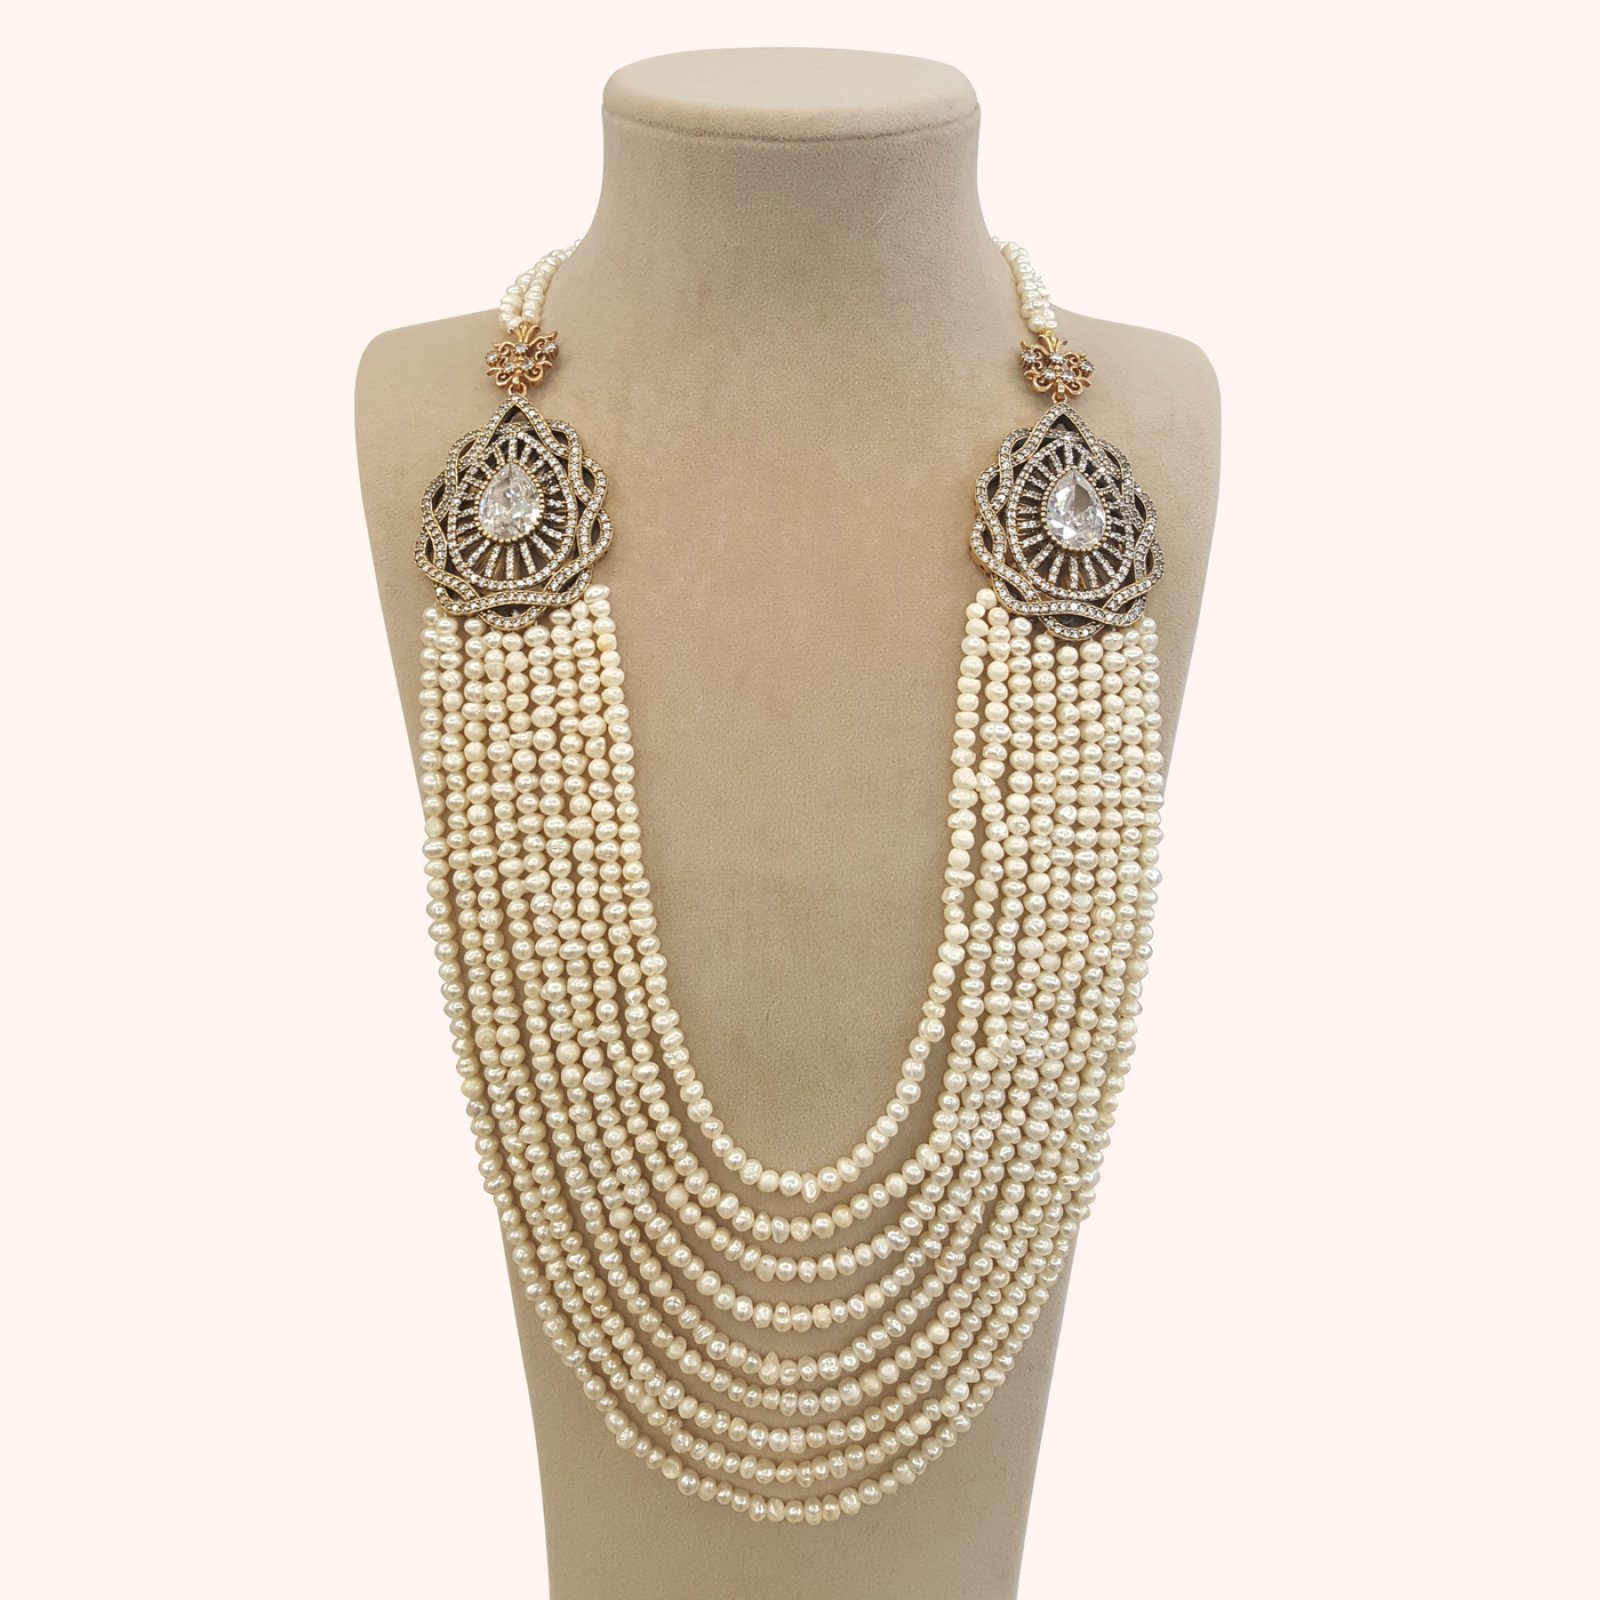 DRN05 - DESIGNER PEARL NECKLACE WITH TWOTURKISH BROOCHES